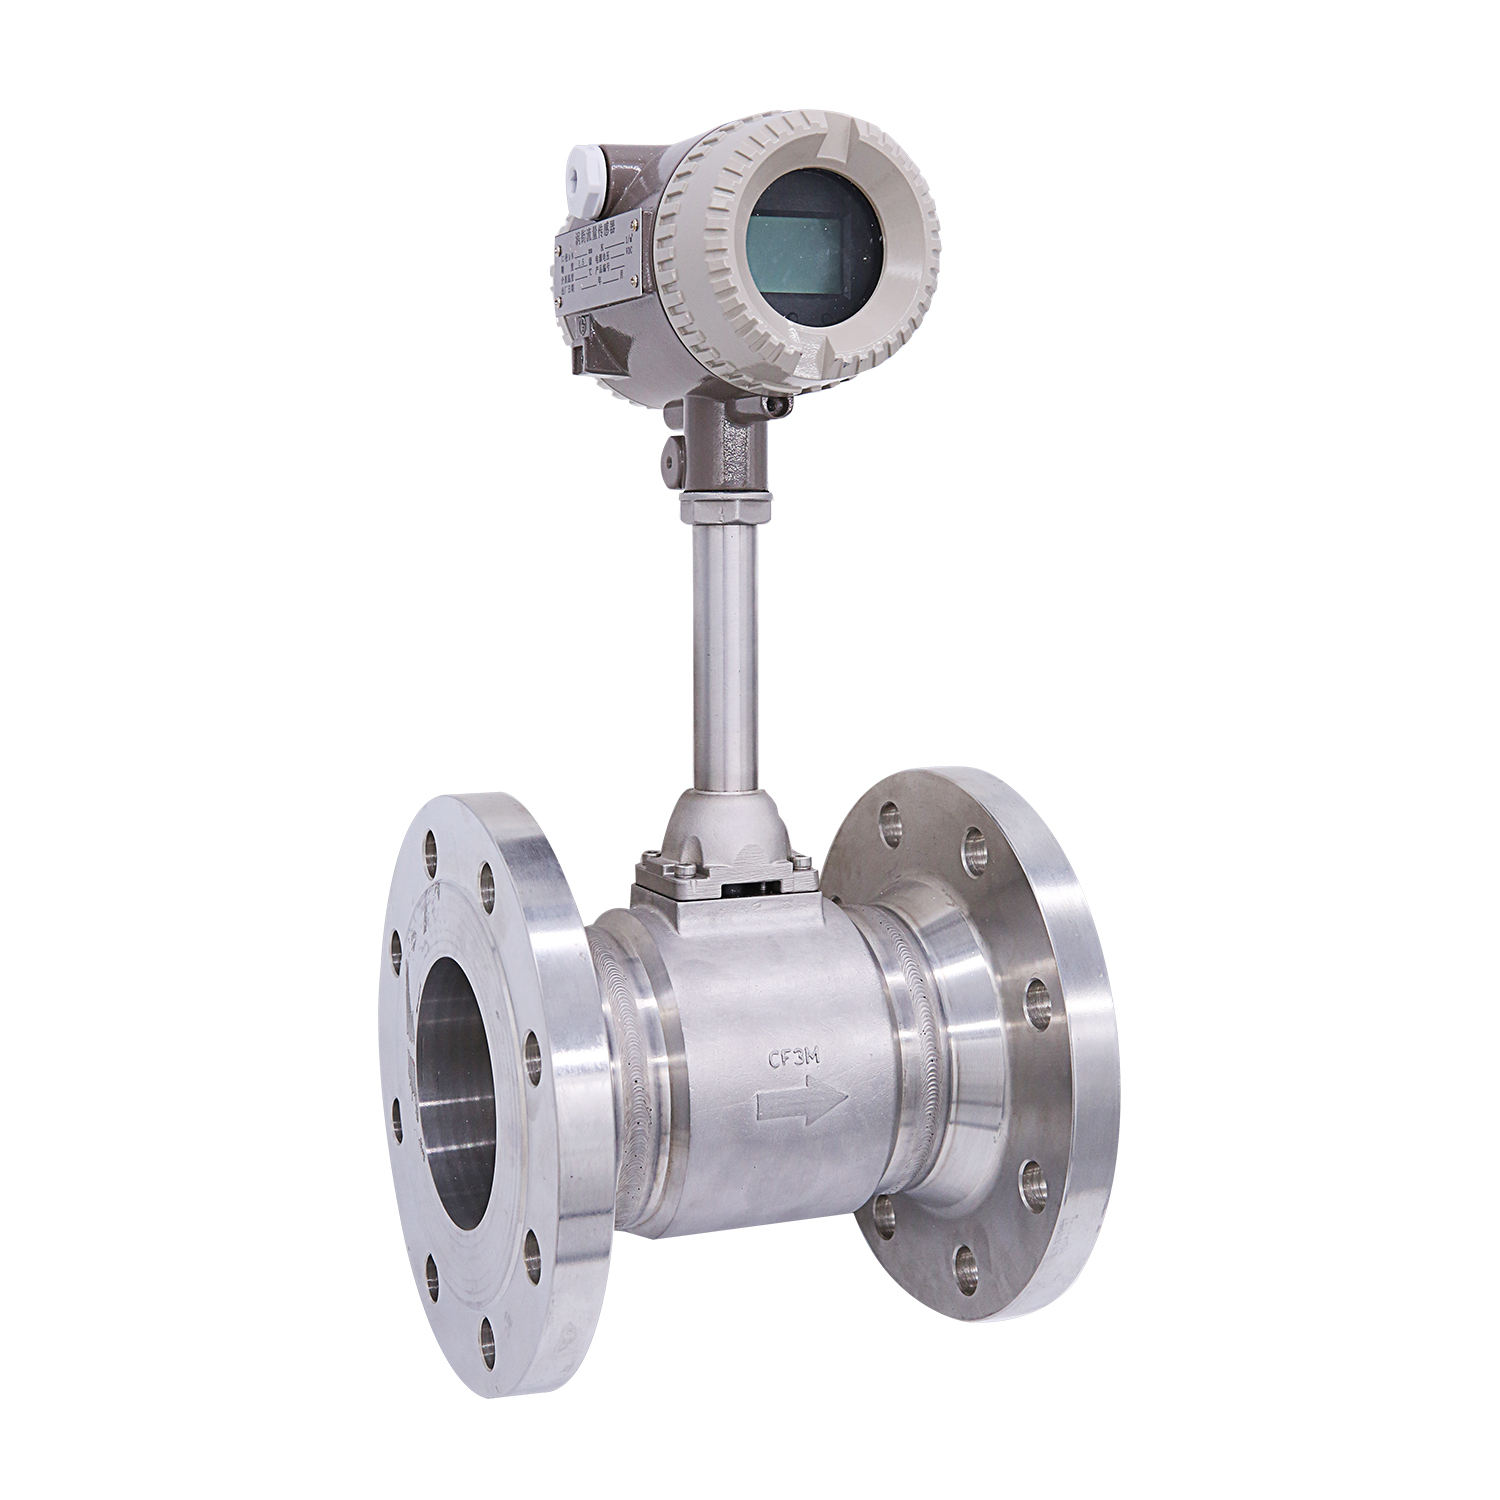 High Temperature And Pressure lpg Gas Flow Meter, Vapor FlowMeter, Compressed Air Flow Meter